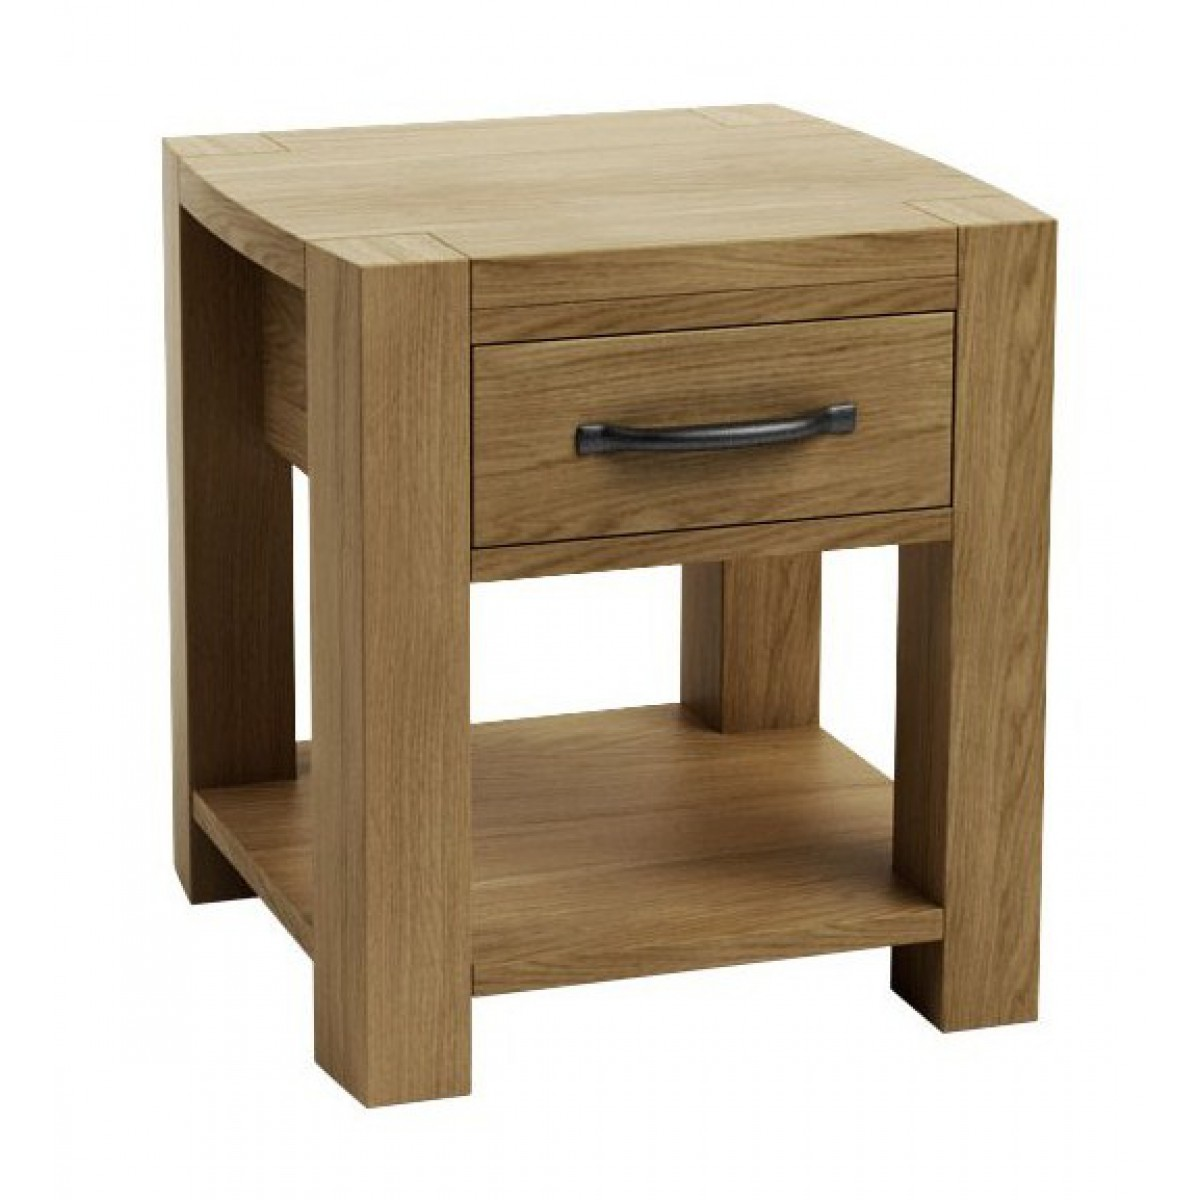 Goliath bedside table - Goliath console table ...